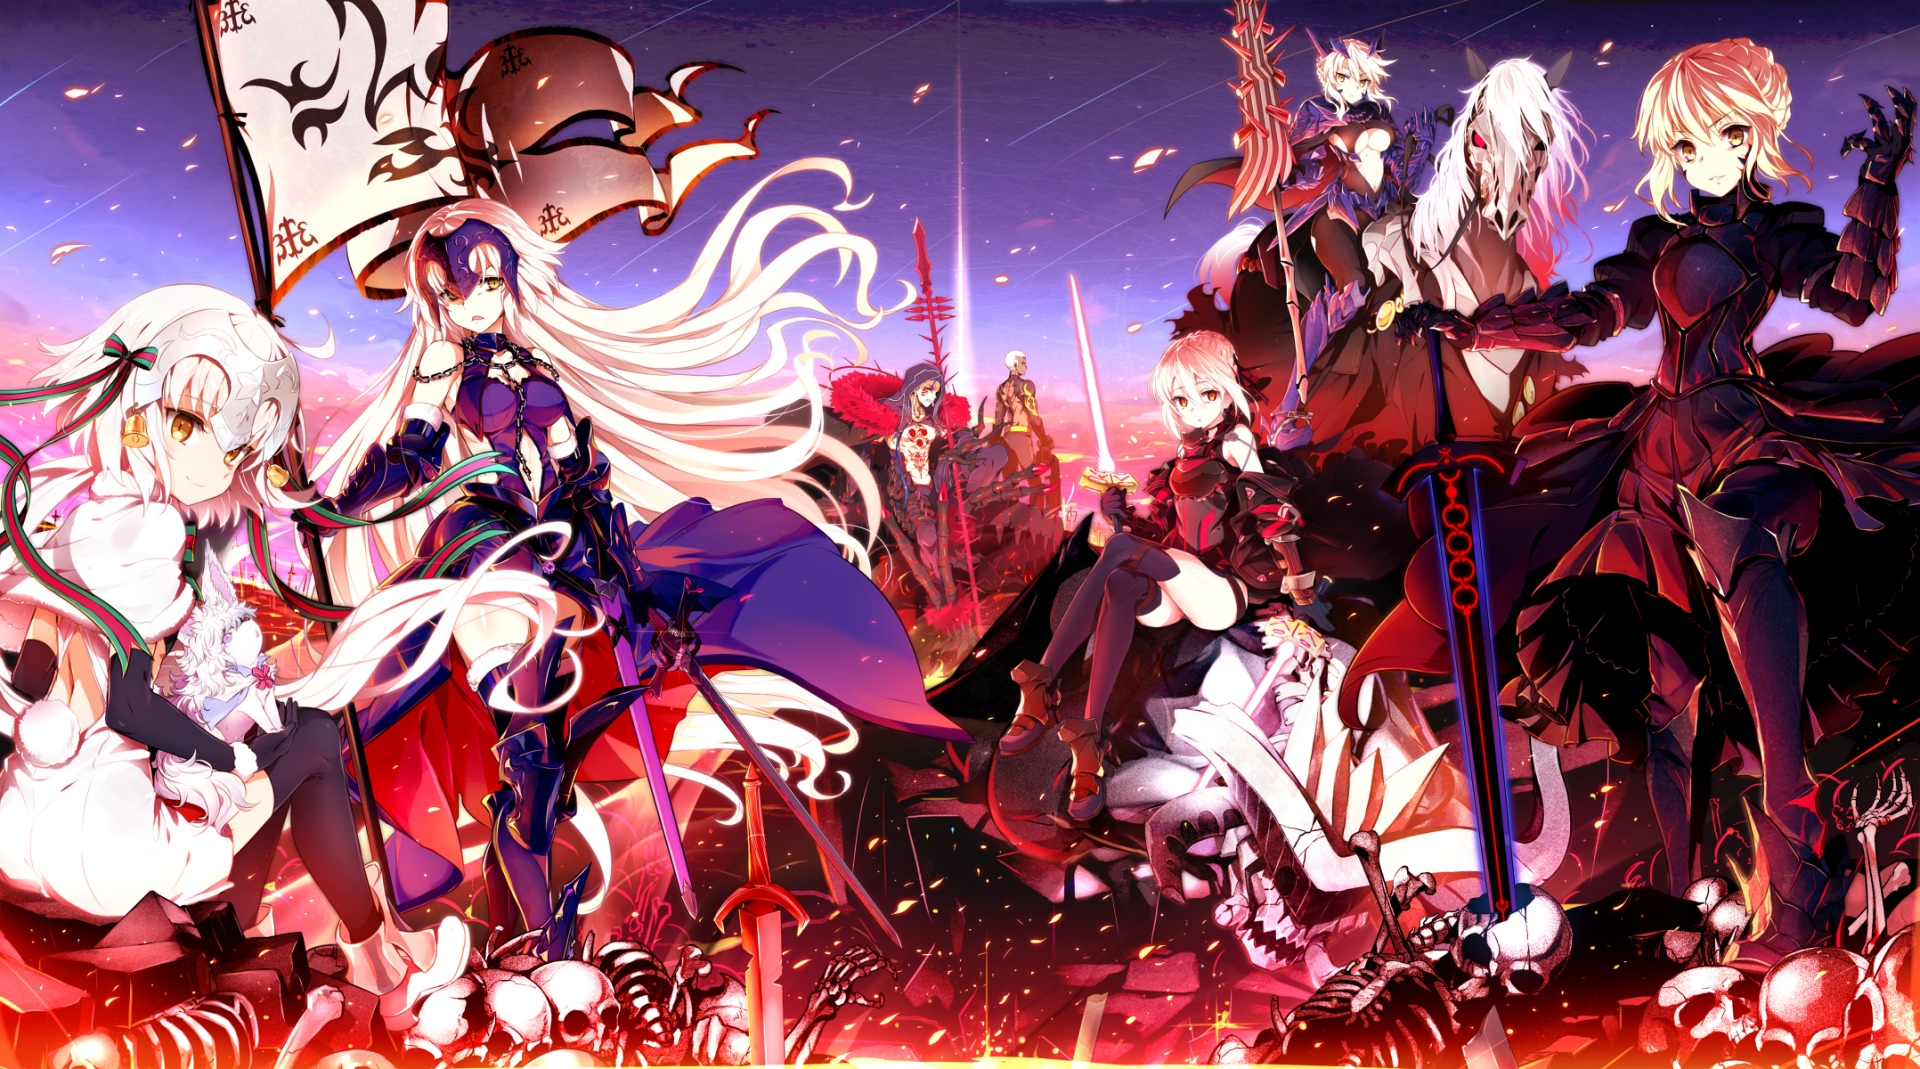 Fate grand order hd wallpaper background image 2156x1200 id 835104 wallpaper abyss - Fate grand order lancer wallpaper ...